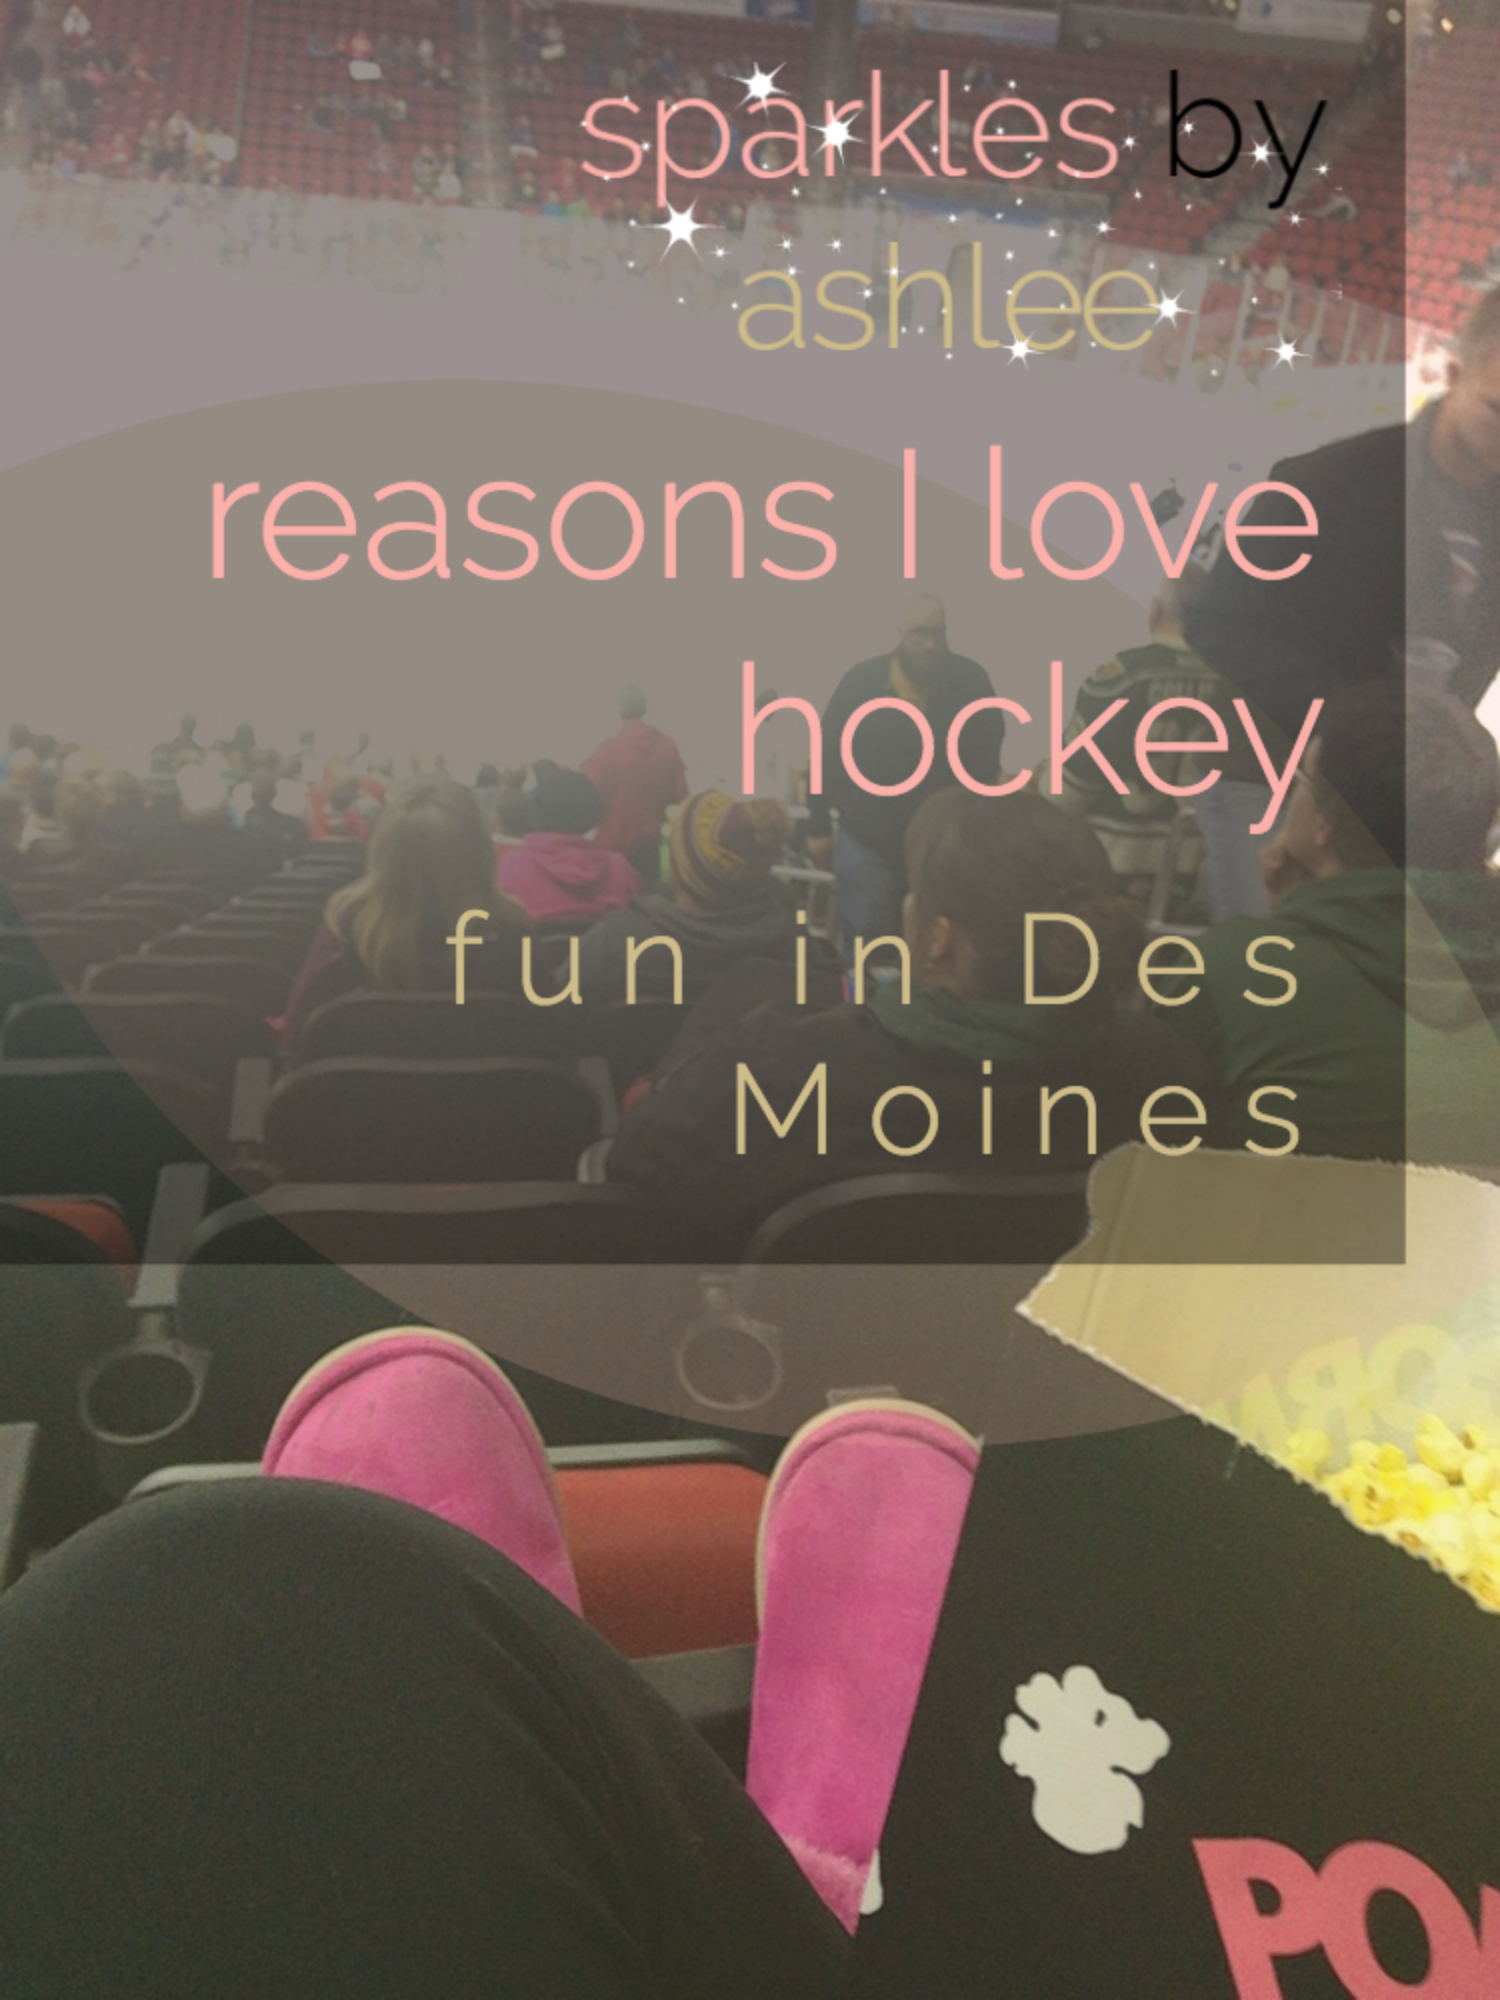 Reasons-I-Love-Hockey-Sparkles-by-Ashlee.jpg